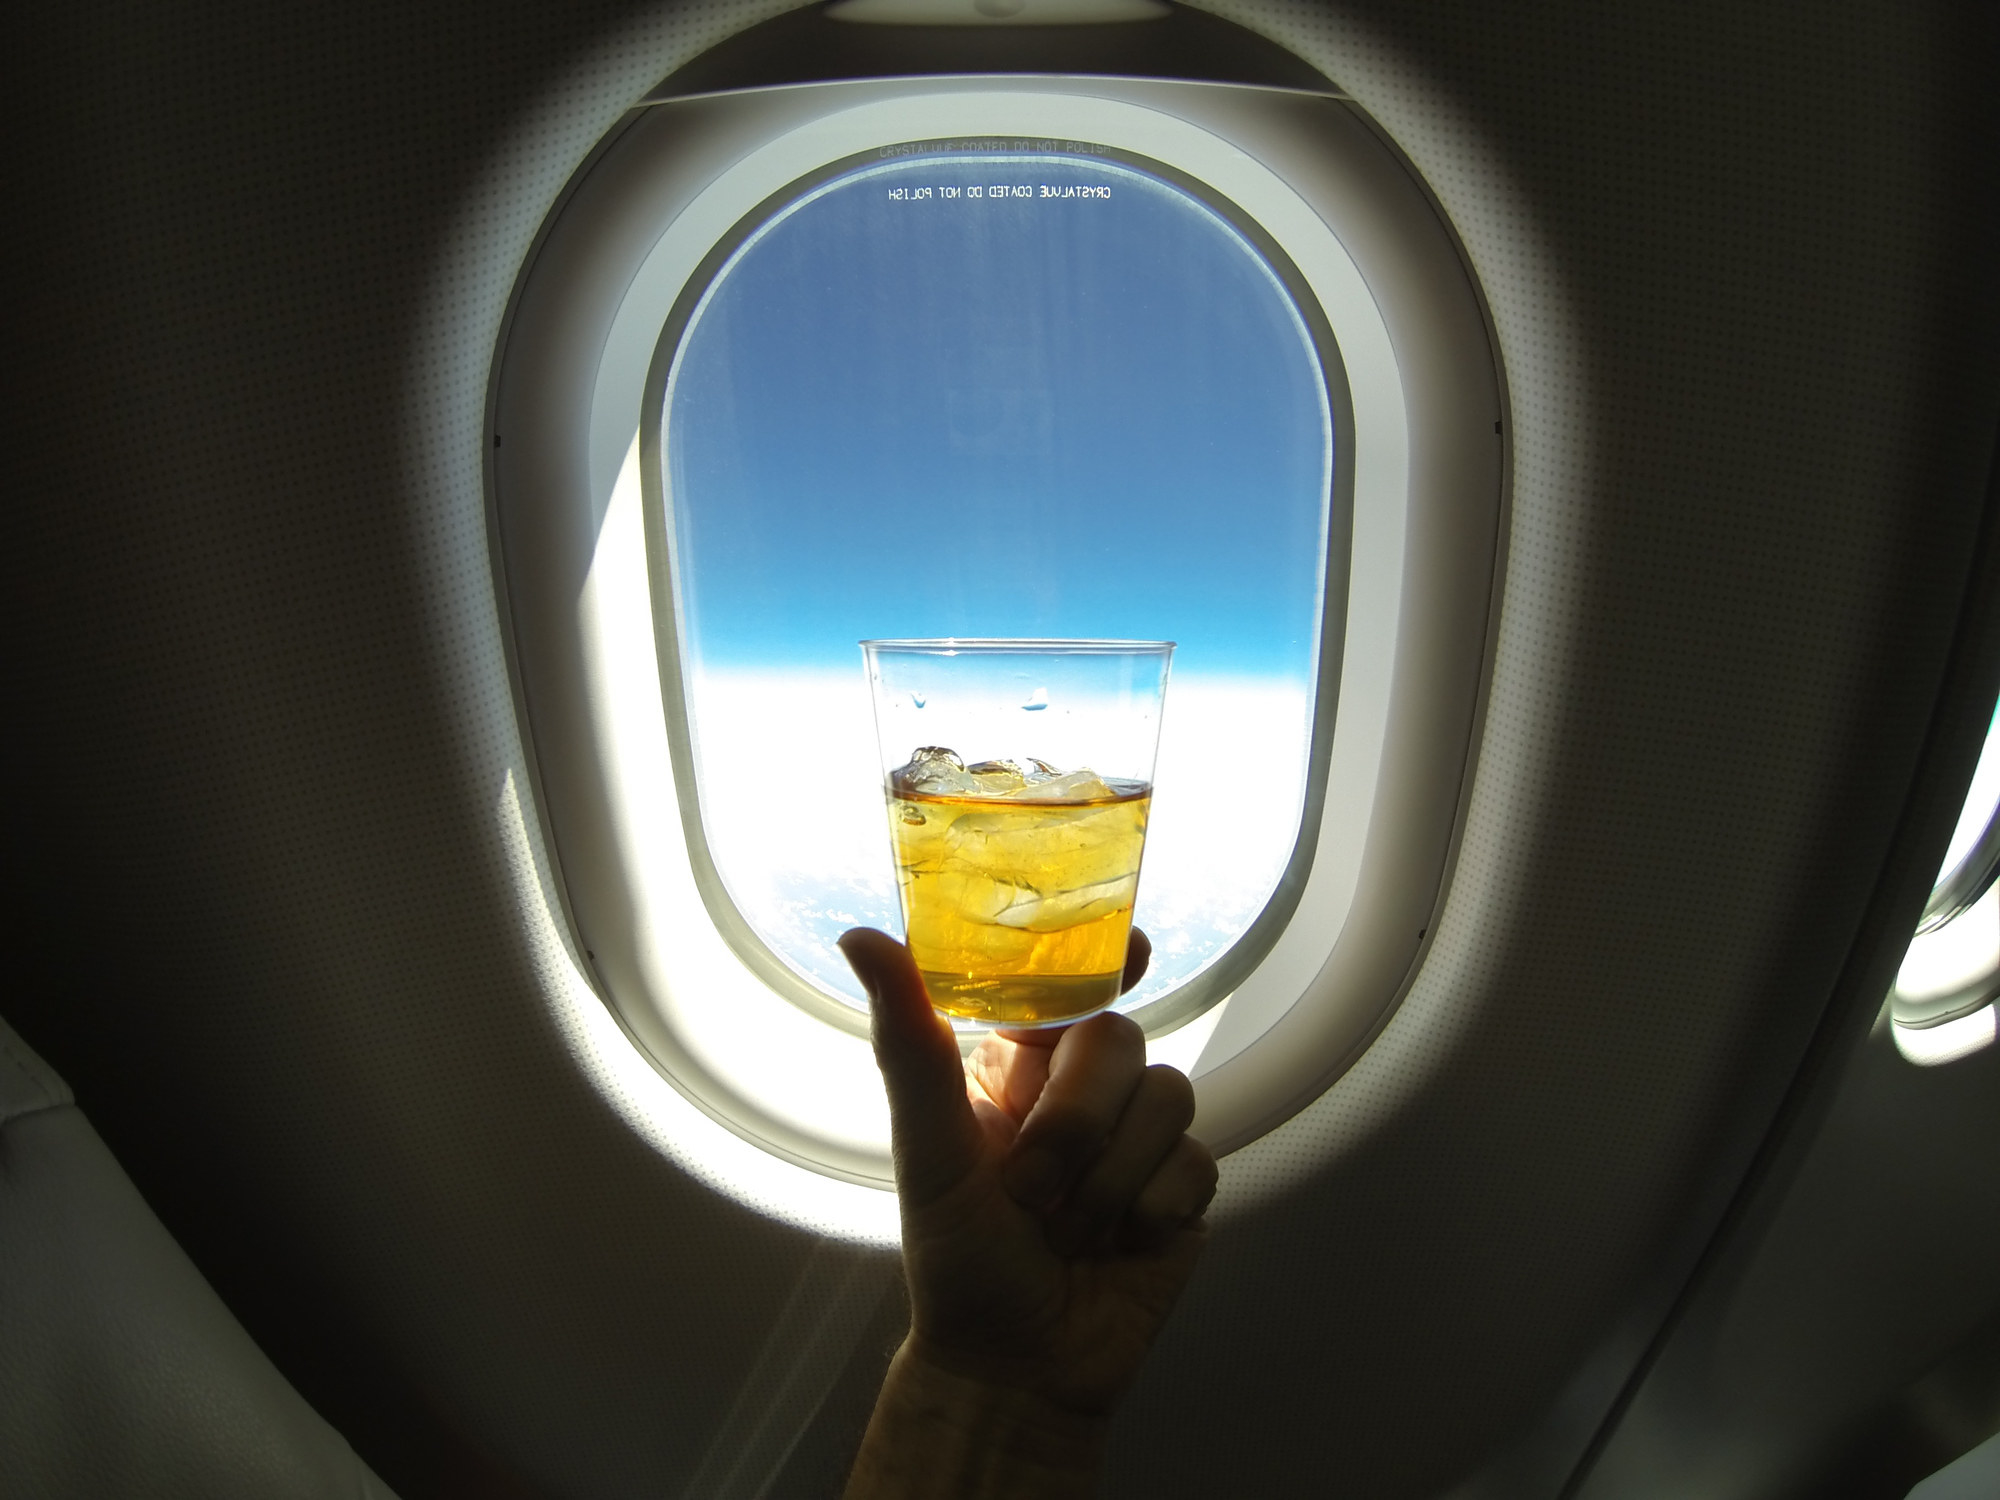 cocktail being held up by in front of an airplane window